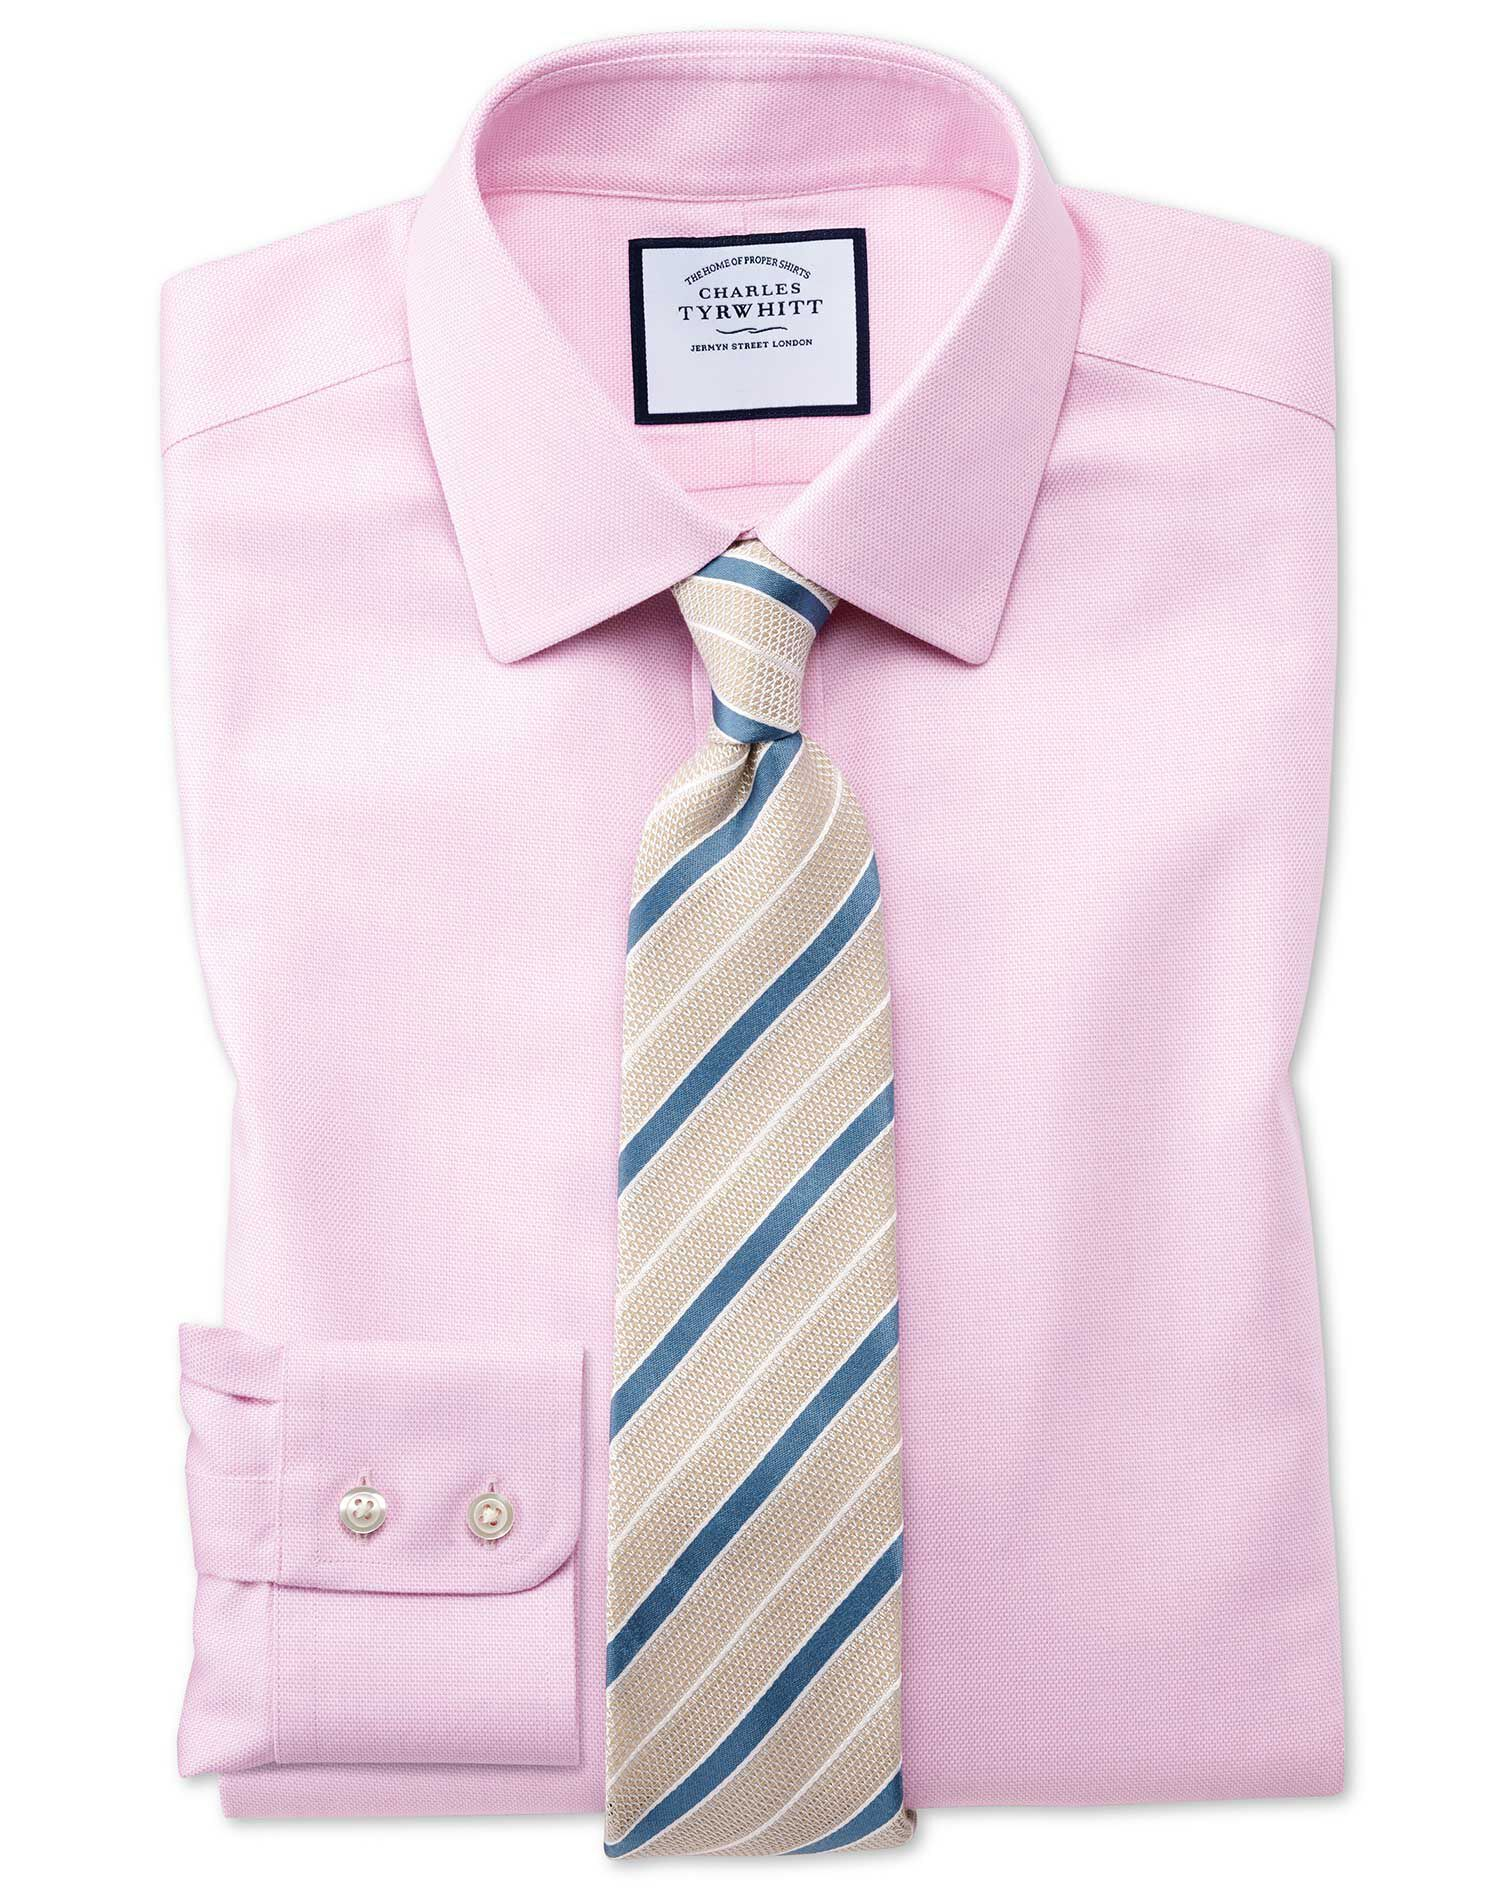 Slim Fit Non-Iron Step Weave Pink Cotton Formal Shirt Single Cuff Size 16.5/38 by Charles Tyrwhitt